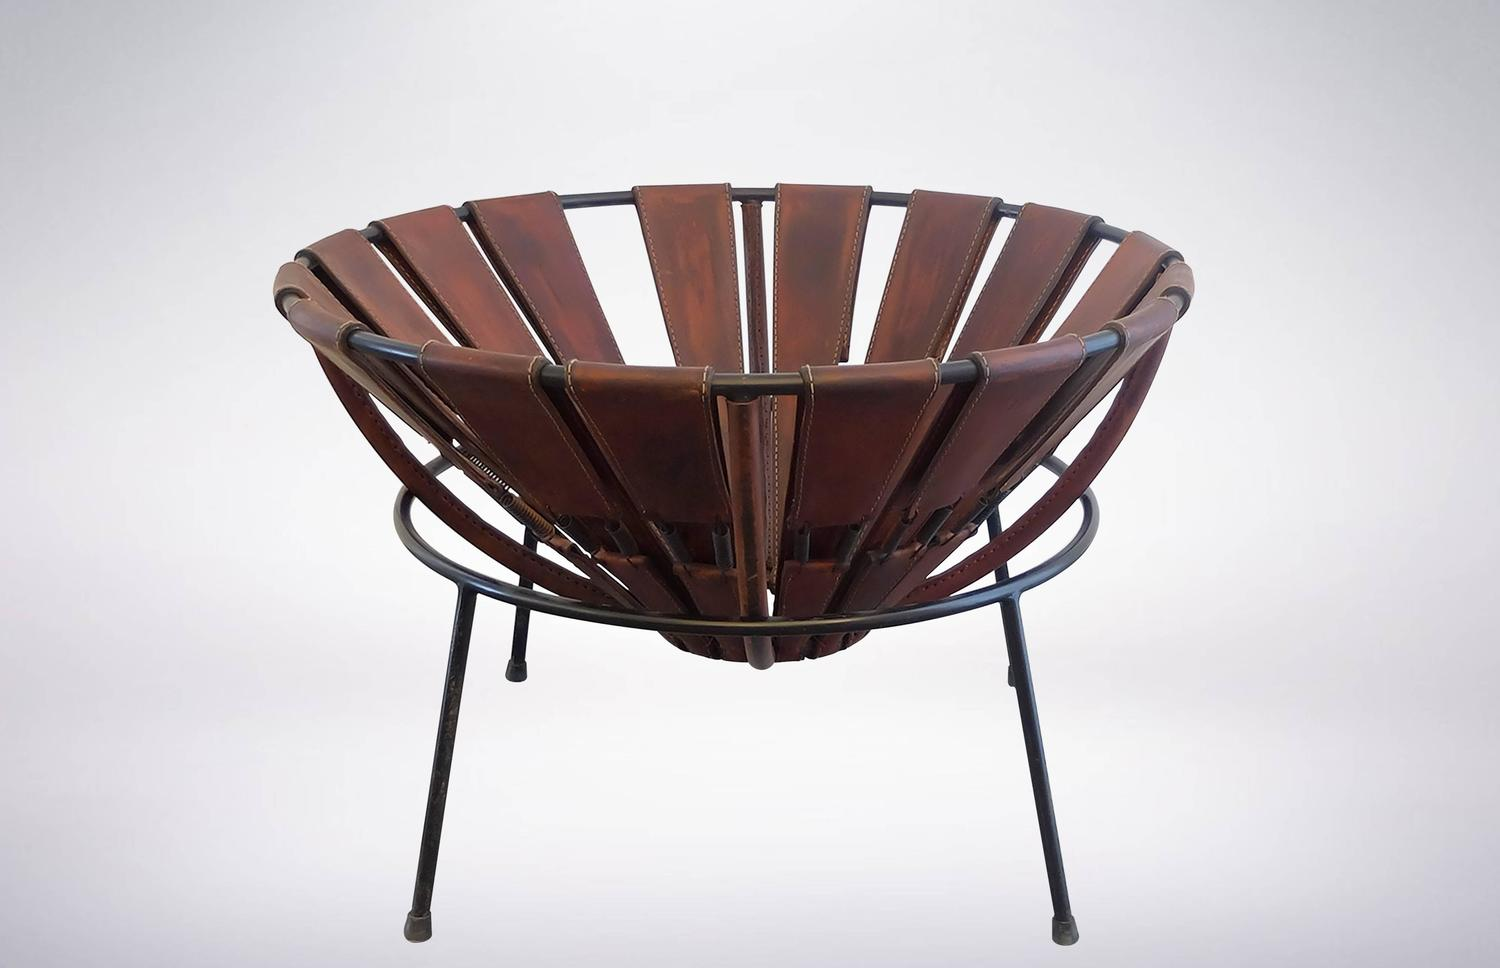 Bowl chair in leather by lina bo bardi from the 1950s for for Lina bo bardi bowl